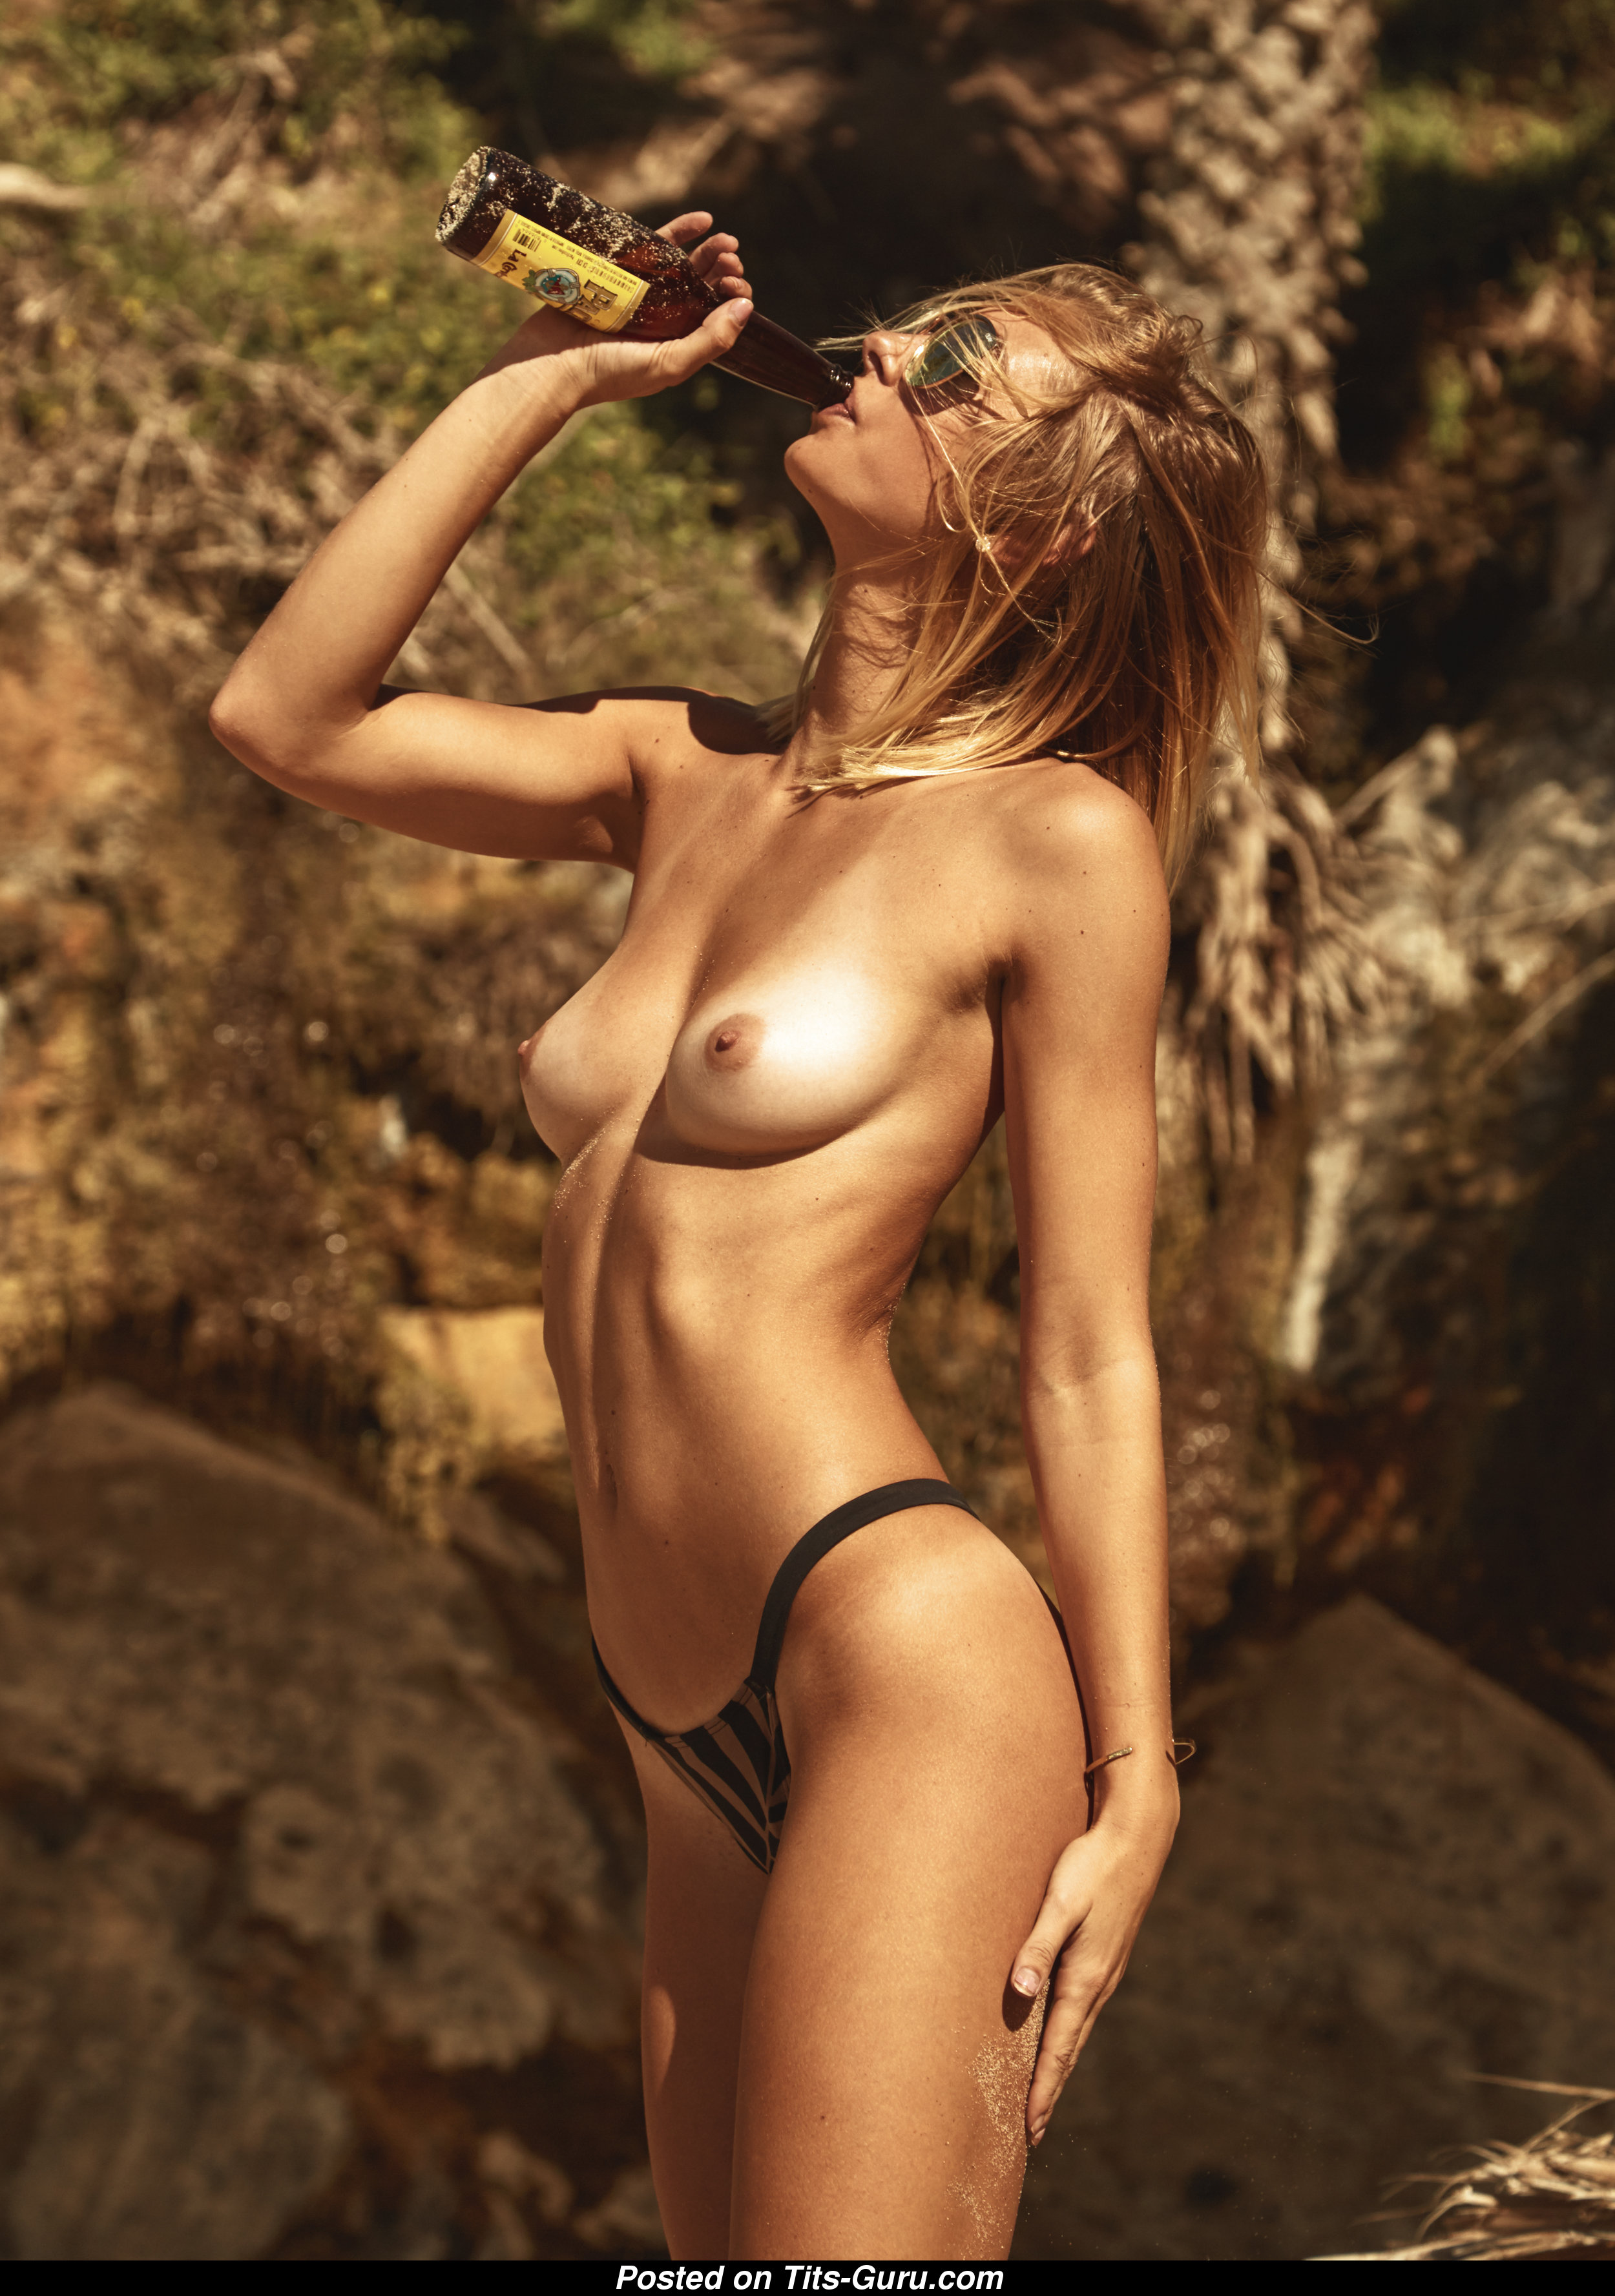 nudes (71 photo), Bikini Celebrites photos